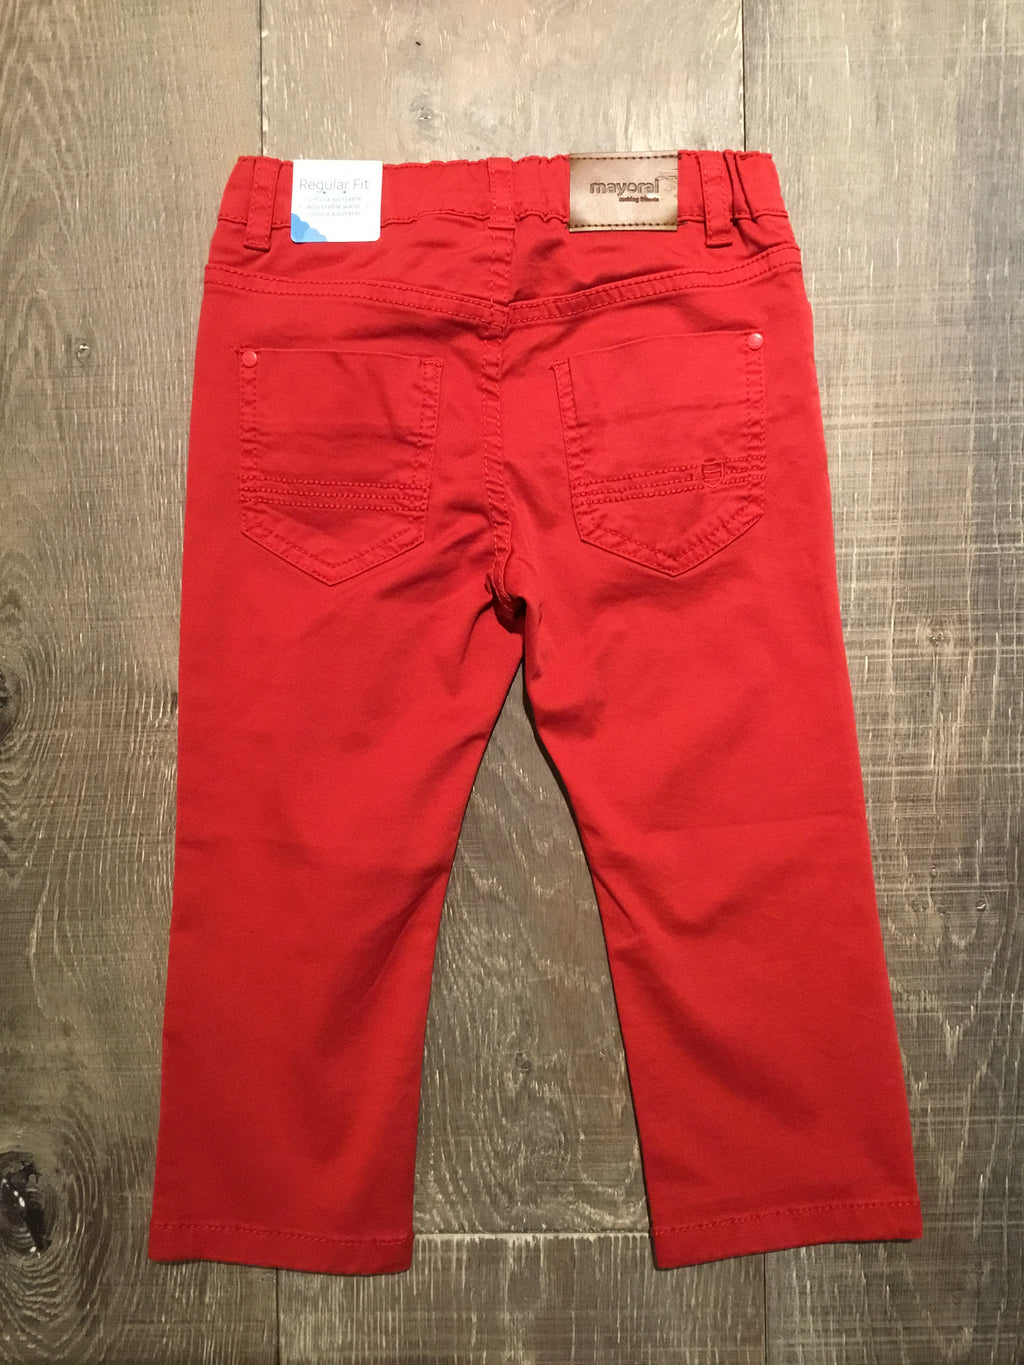 Regular Fit Colorado Red 5 Pocket Twill Trousers